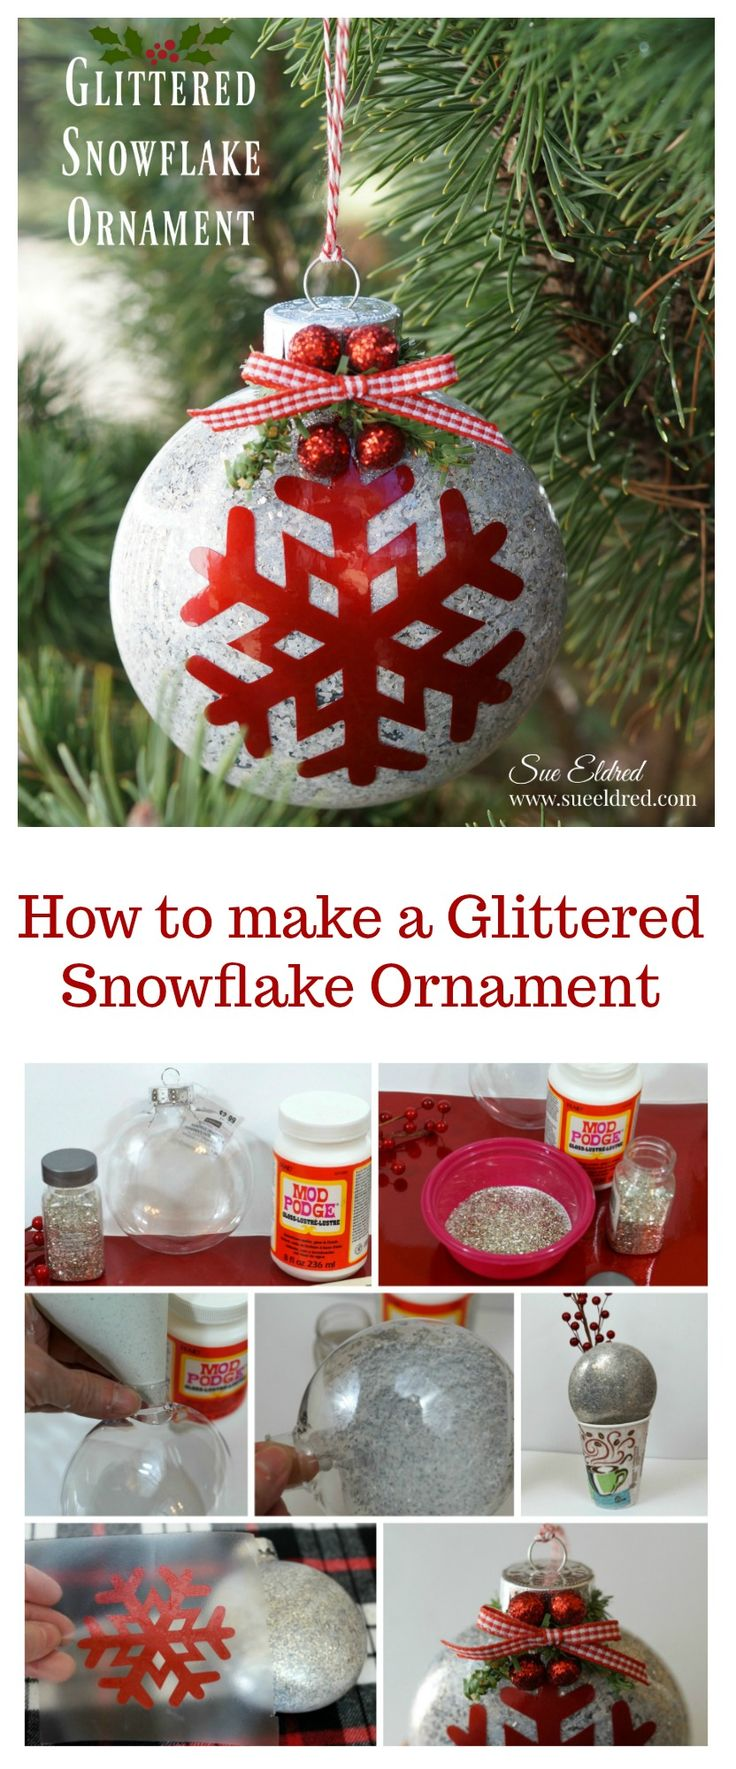 How to make a Glittered Snowflake Ornament from Sue's Creative Workshop www.sueeldred.com